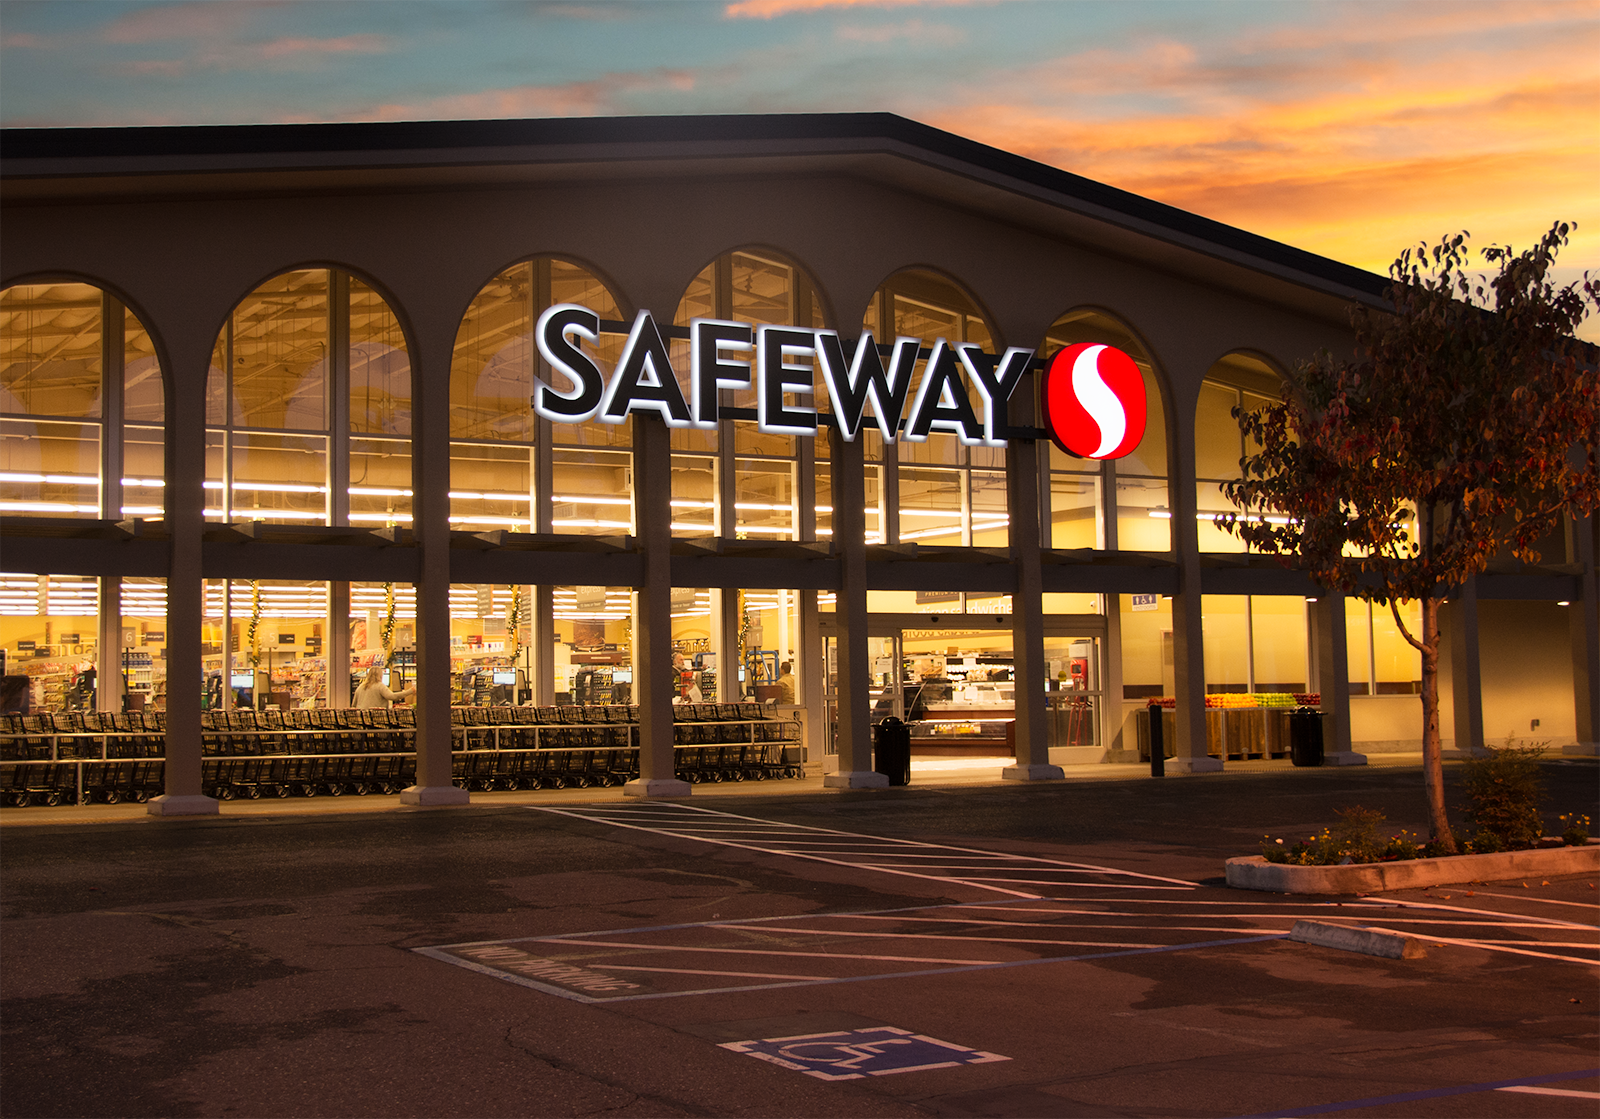 Safeway Store Front Picture - 7414 Little River Turnpike in Annandale VA